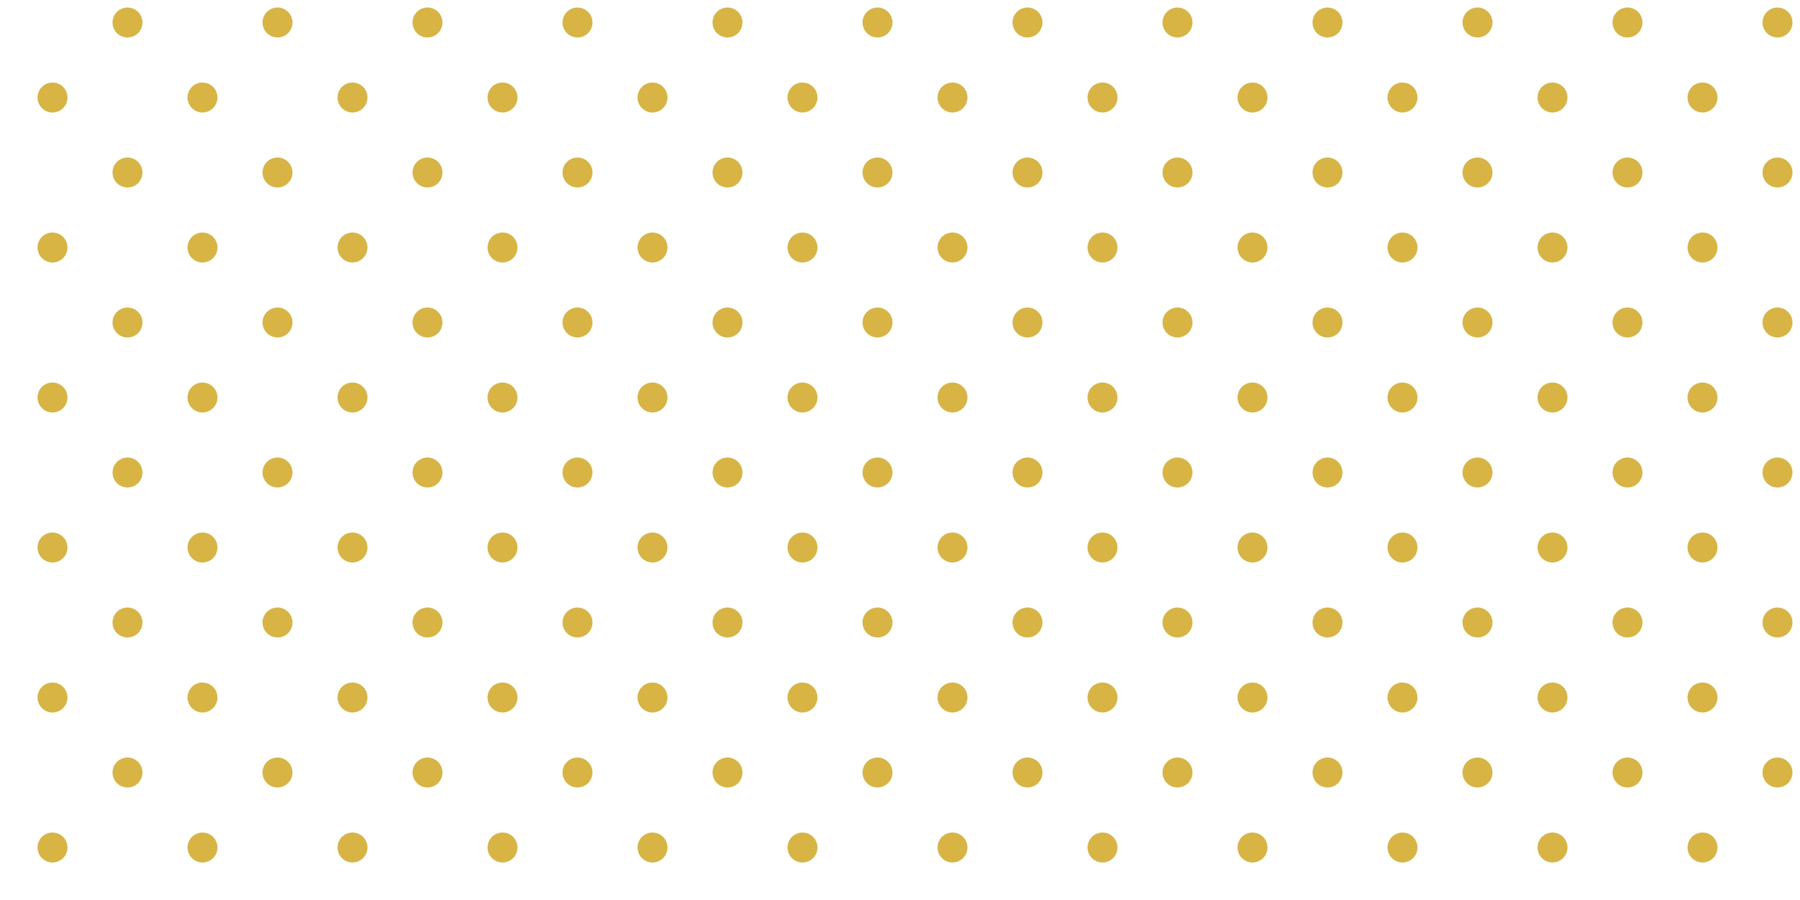 Rose Gold Dots Desktop Wallpapers Top Free Rose Gold Dots